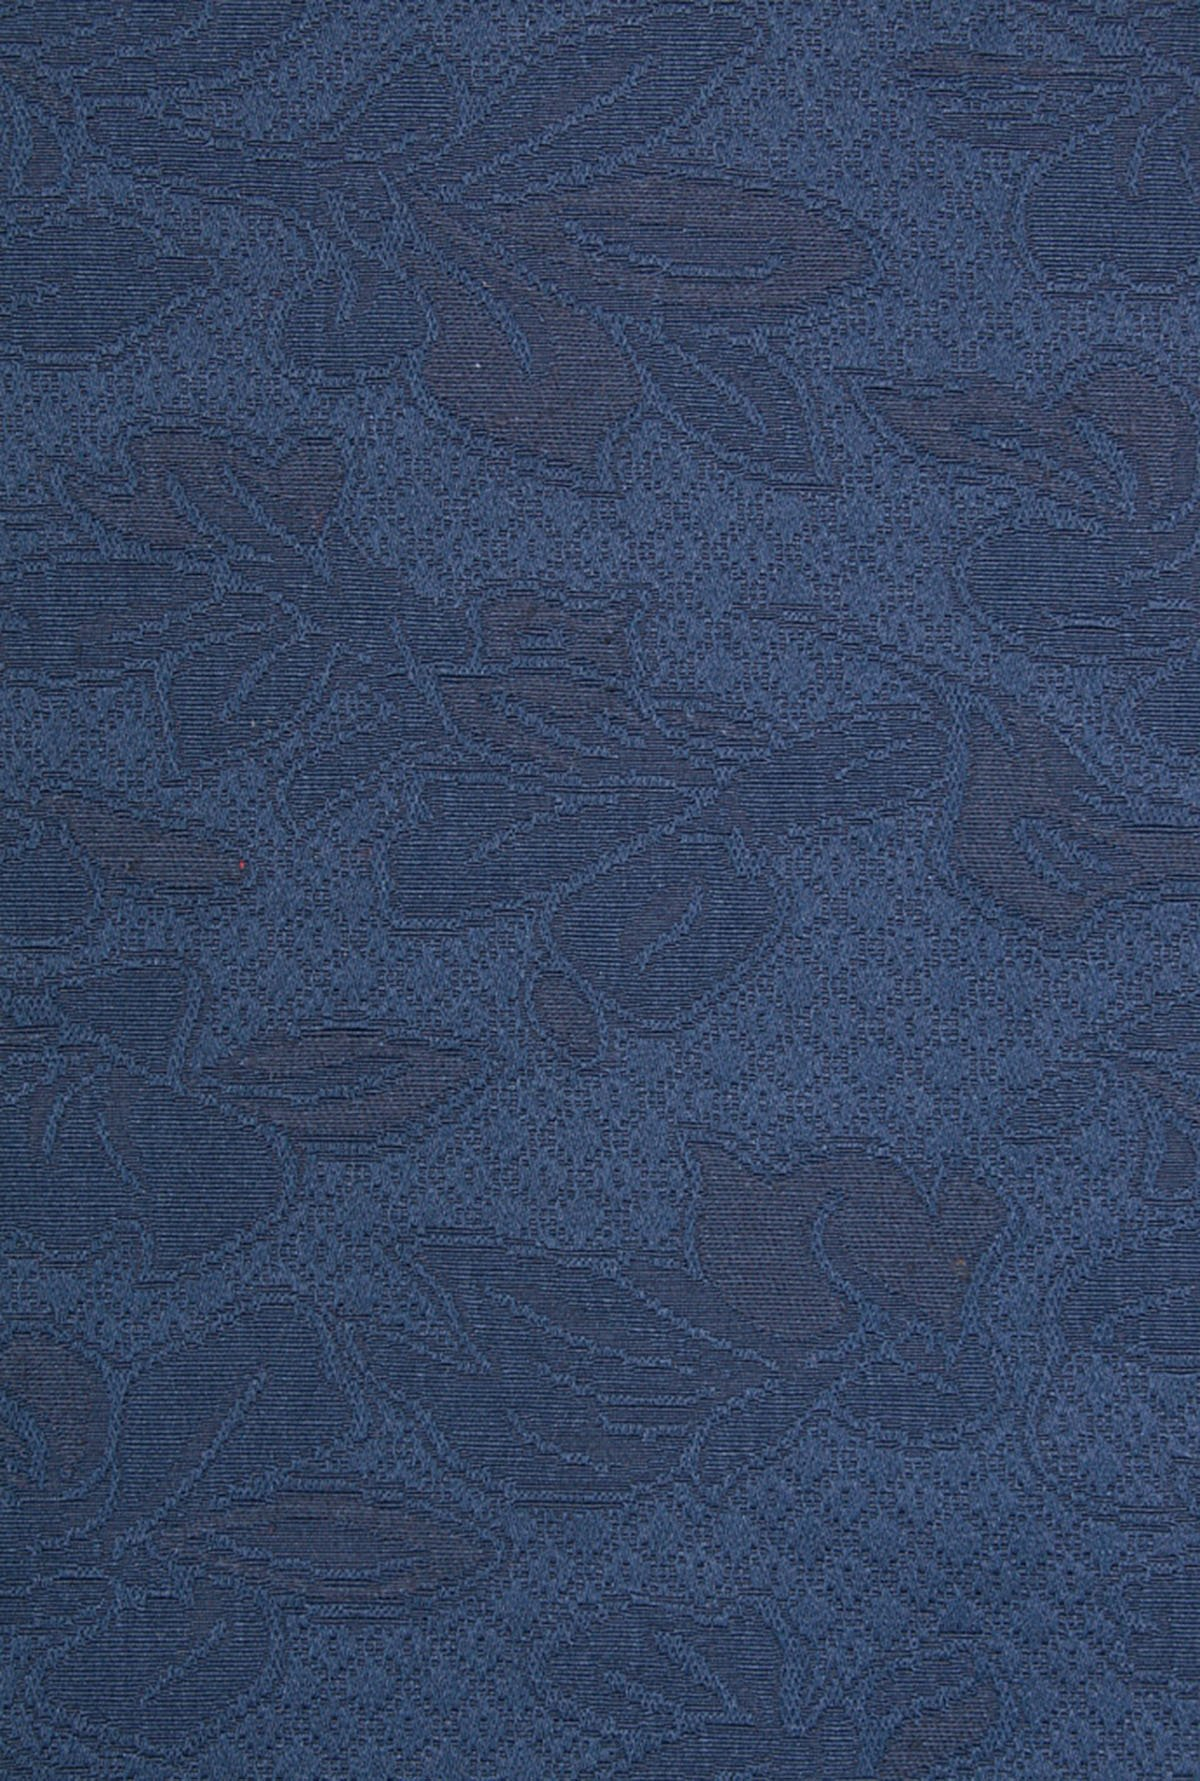 Healthcare Interiors Sea Spice Unquilted Twin Bed Spread (Blue)